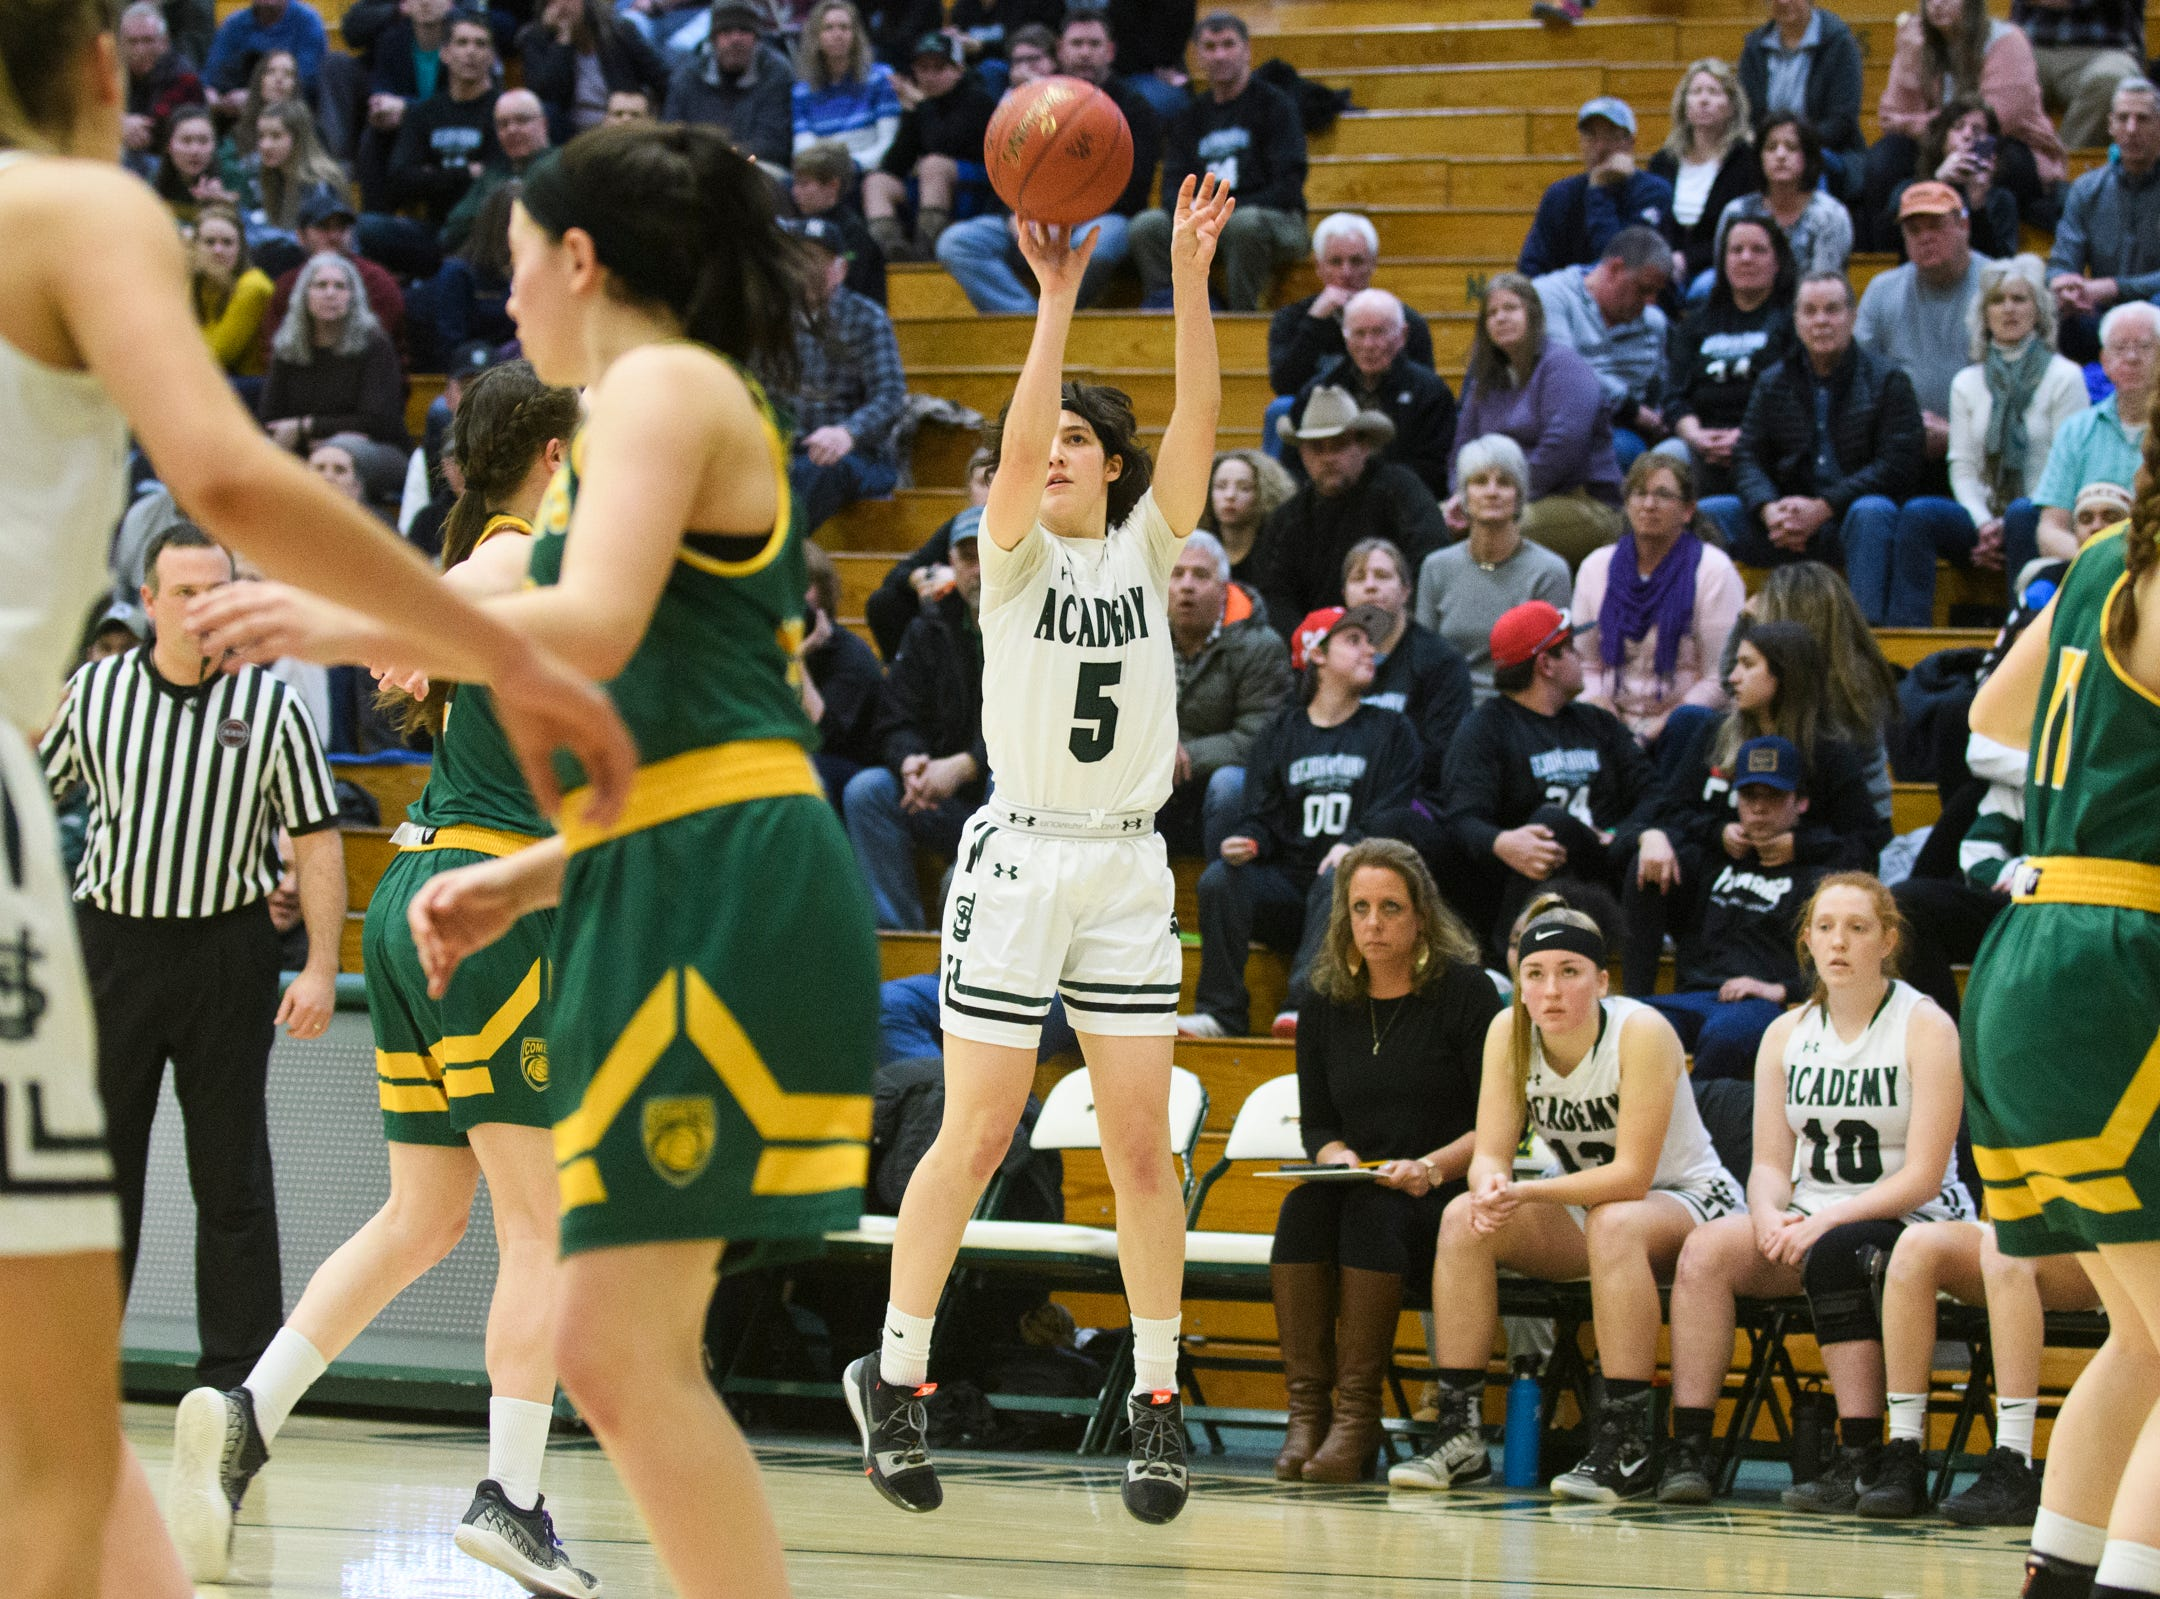 St. Johnsbury's Sadie Stetson (5) shoots the ball during the girls semifinal basketball game between the BFA St. Albans Comets and the St. Johnsbury Hilltoppers at Patrick Gym on Wednesday night March 6, 2019 in Burlington, Vermont.